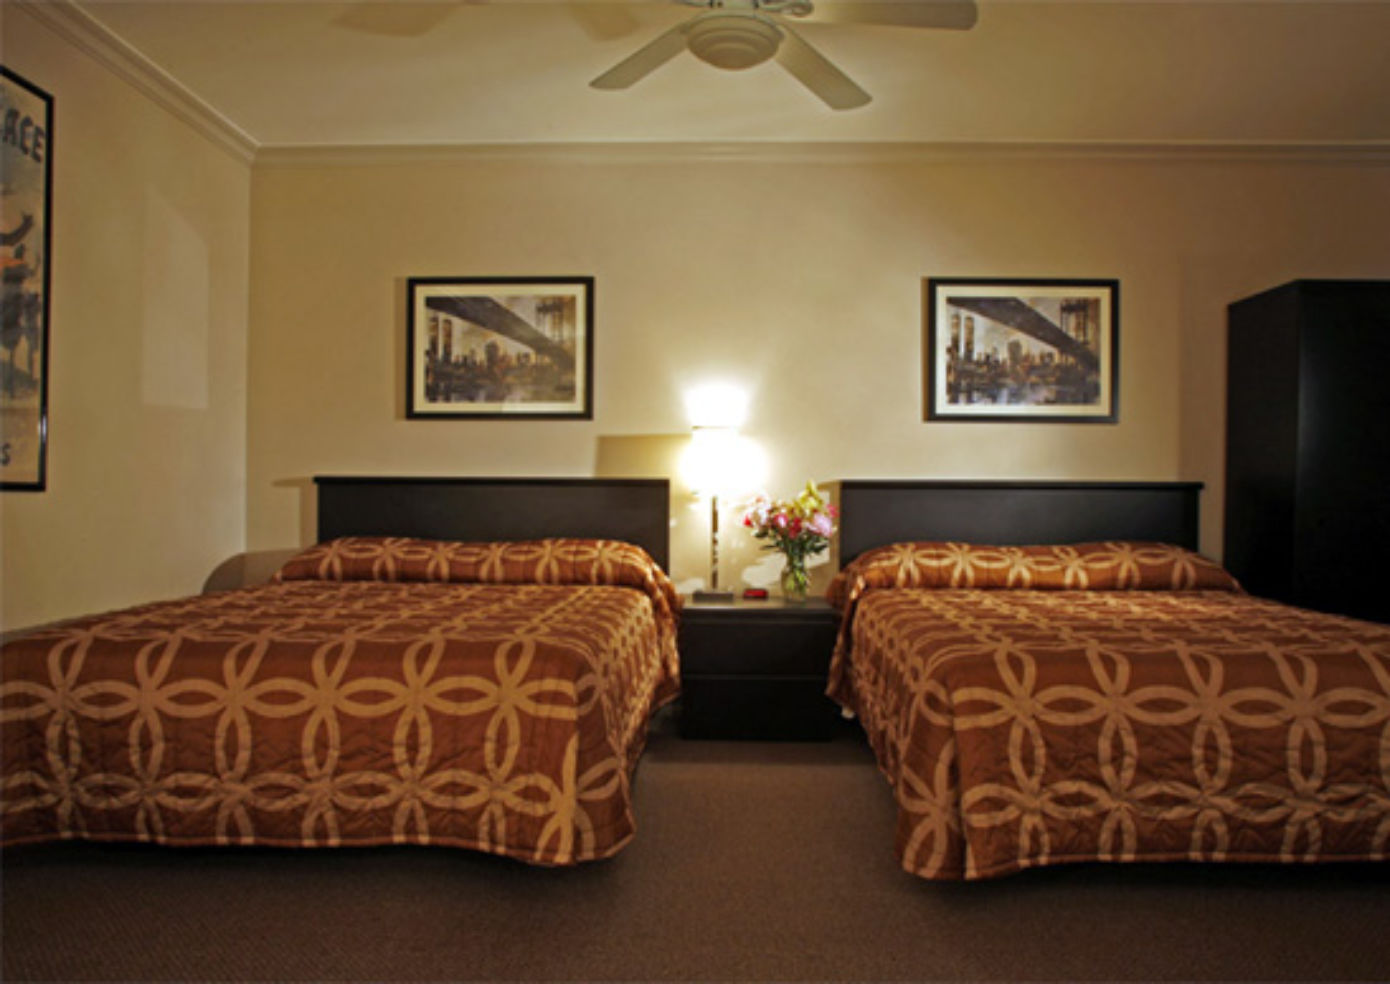 The Cosmopolitan Hotel, double room with queen beds